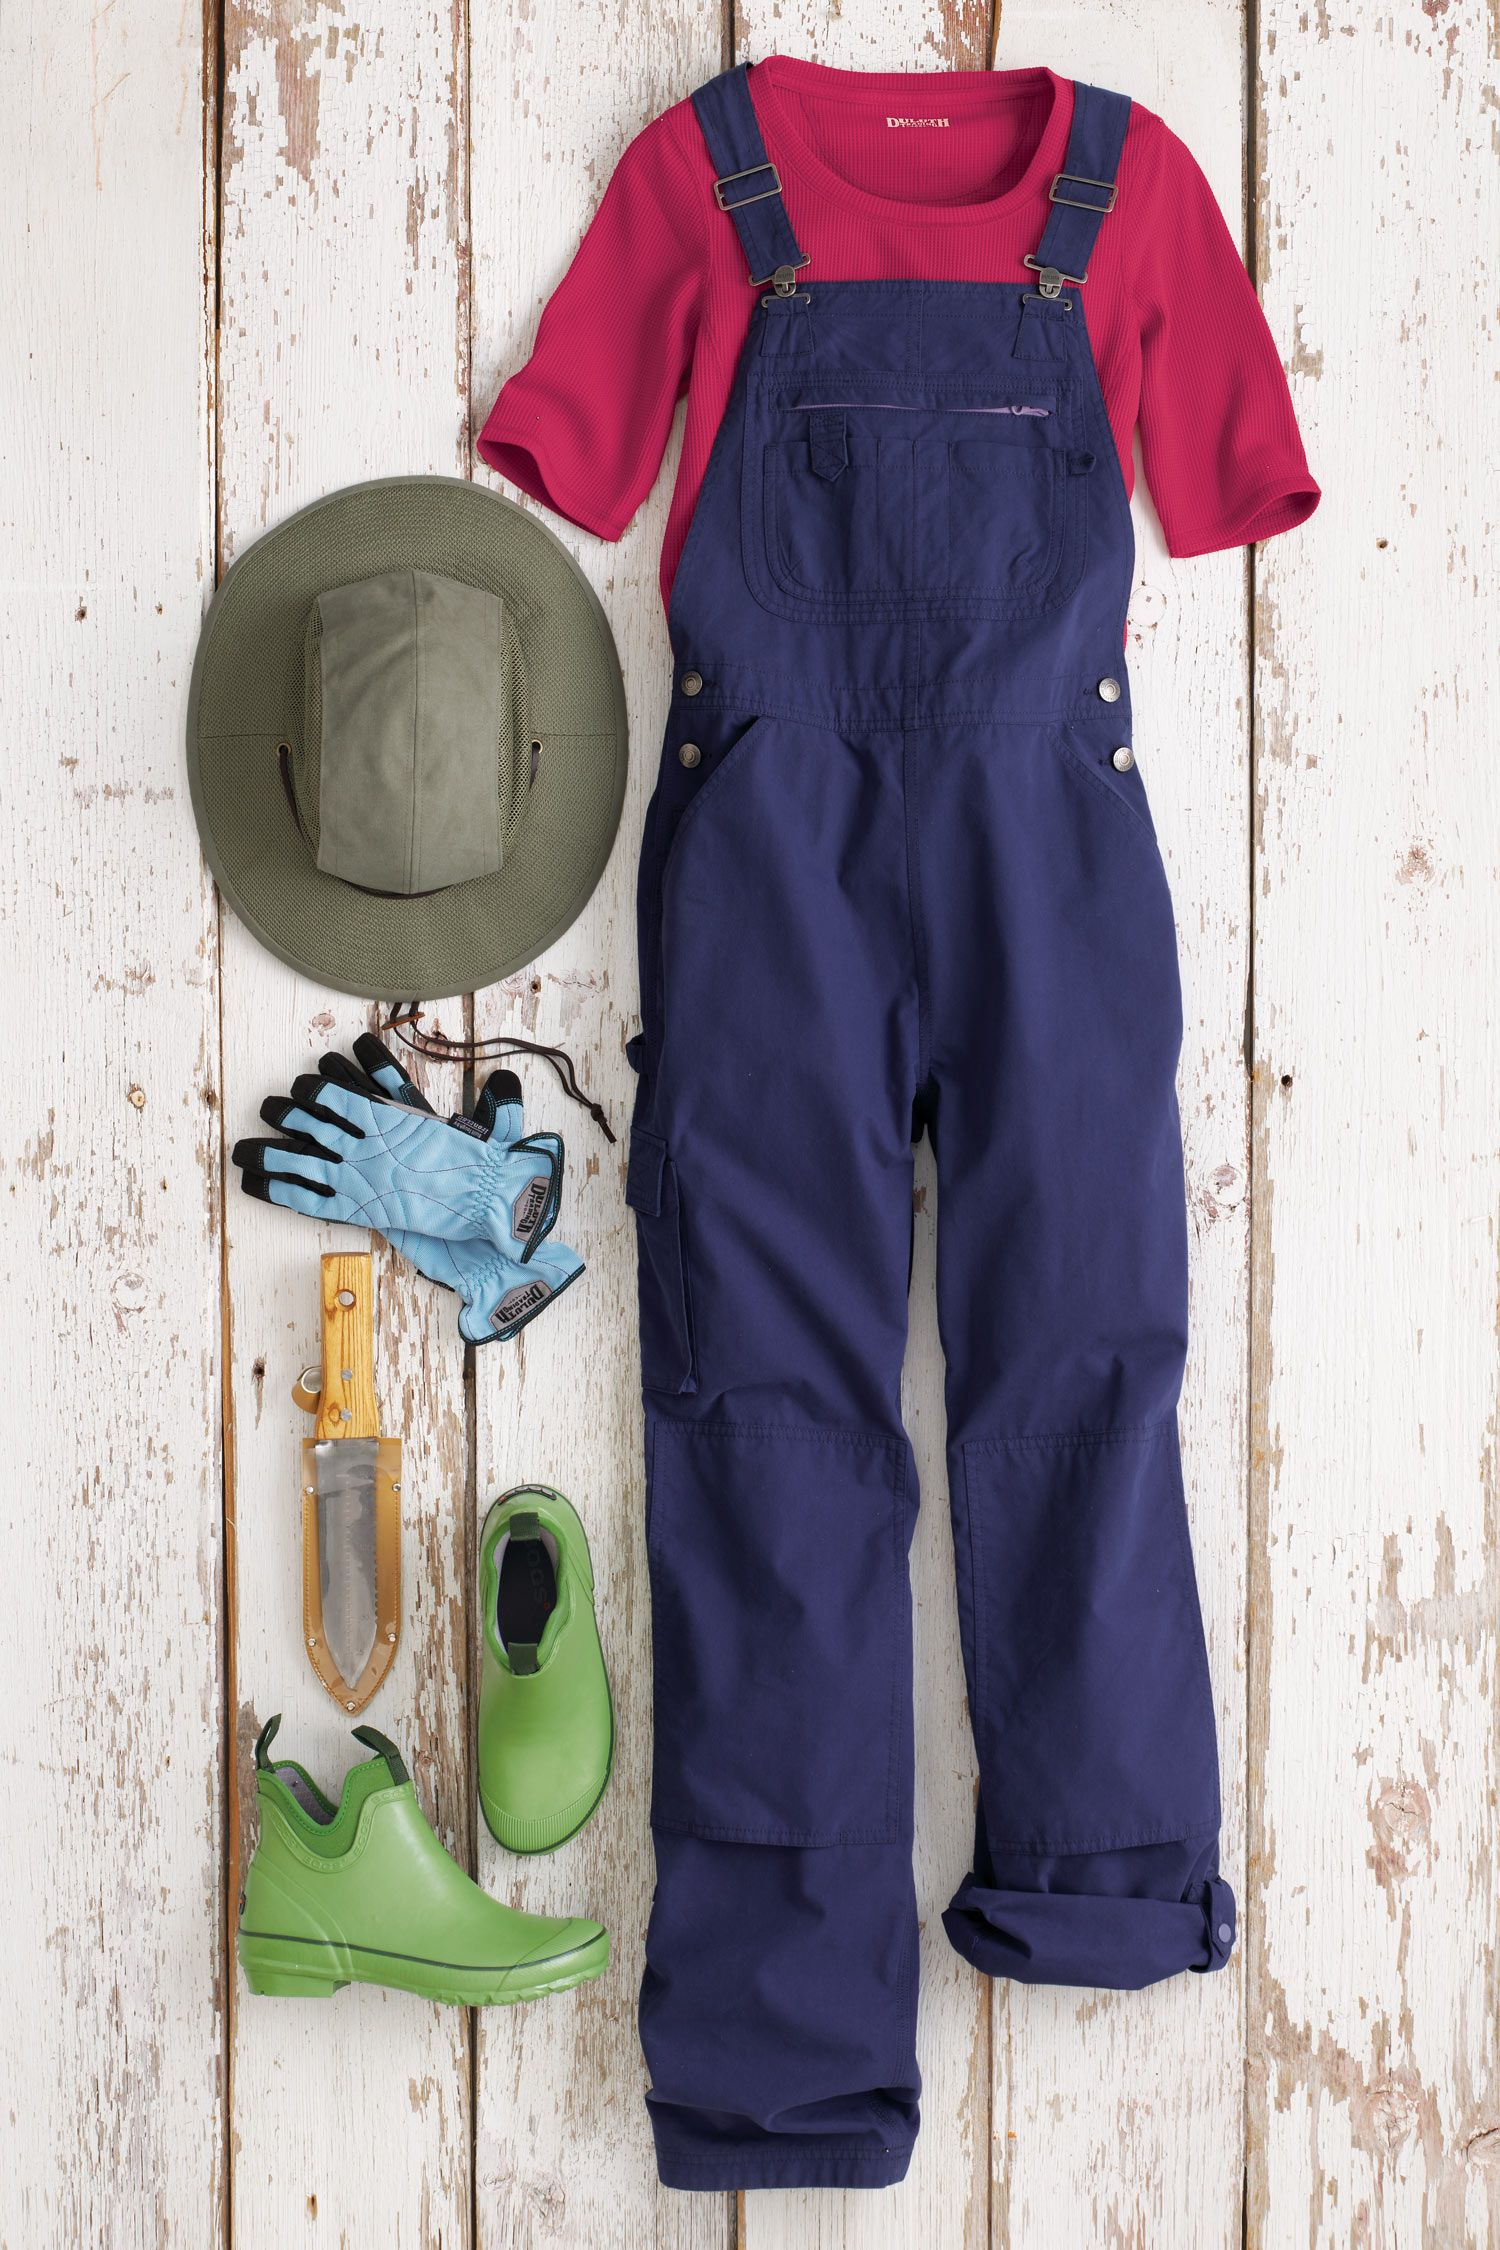 Exceptional Top Rated Womenu0027s Garden Gear, Work Pants And Womenu0027s Tees For Gals Who Dig